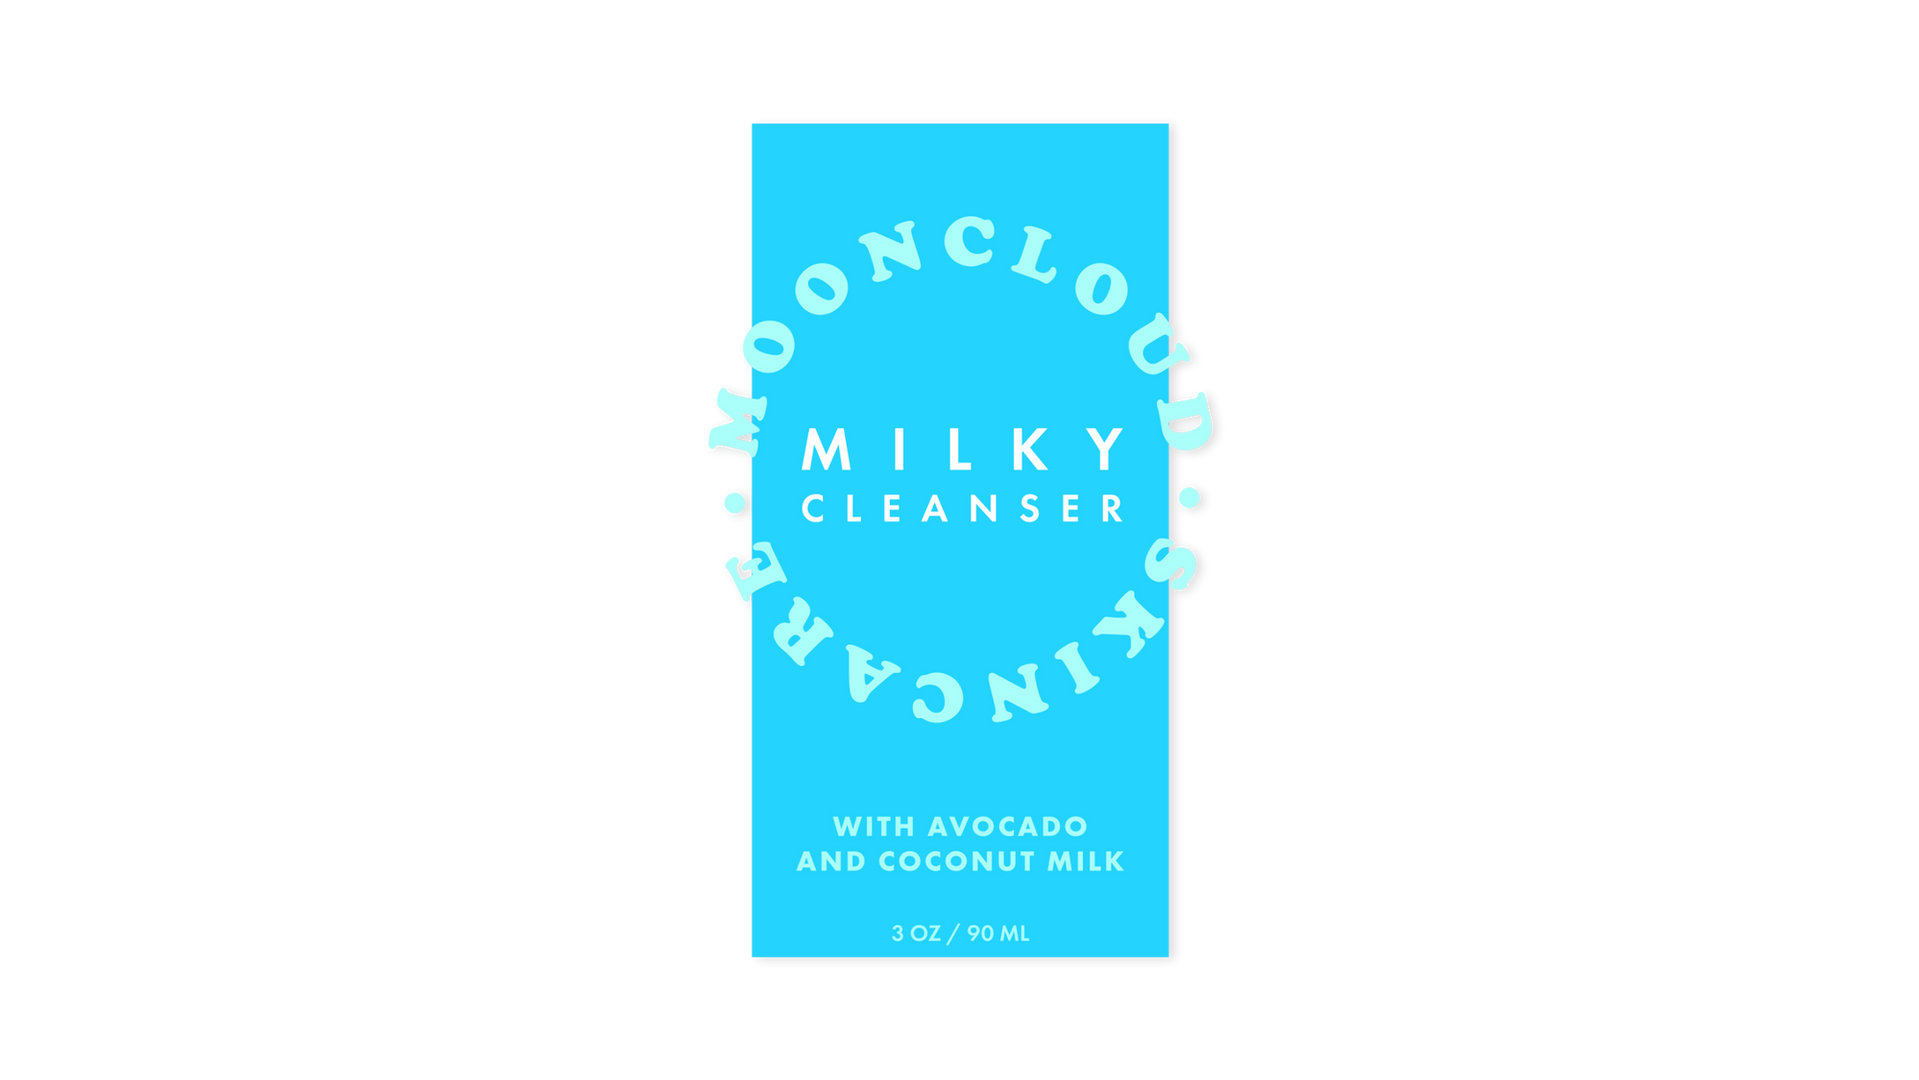 Milky Cleanser Label